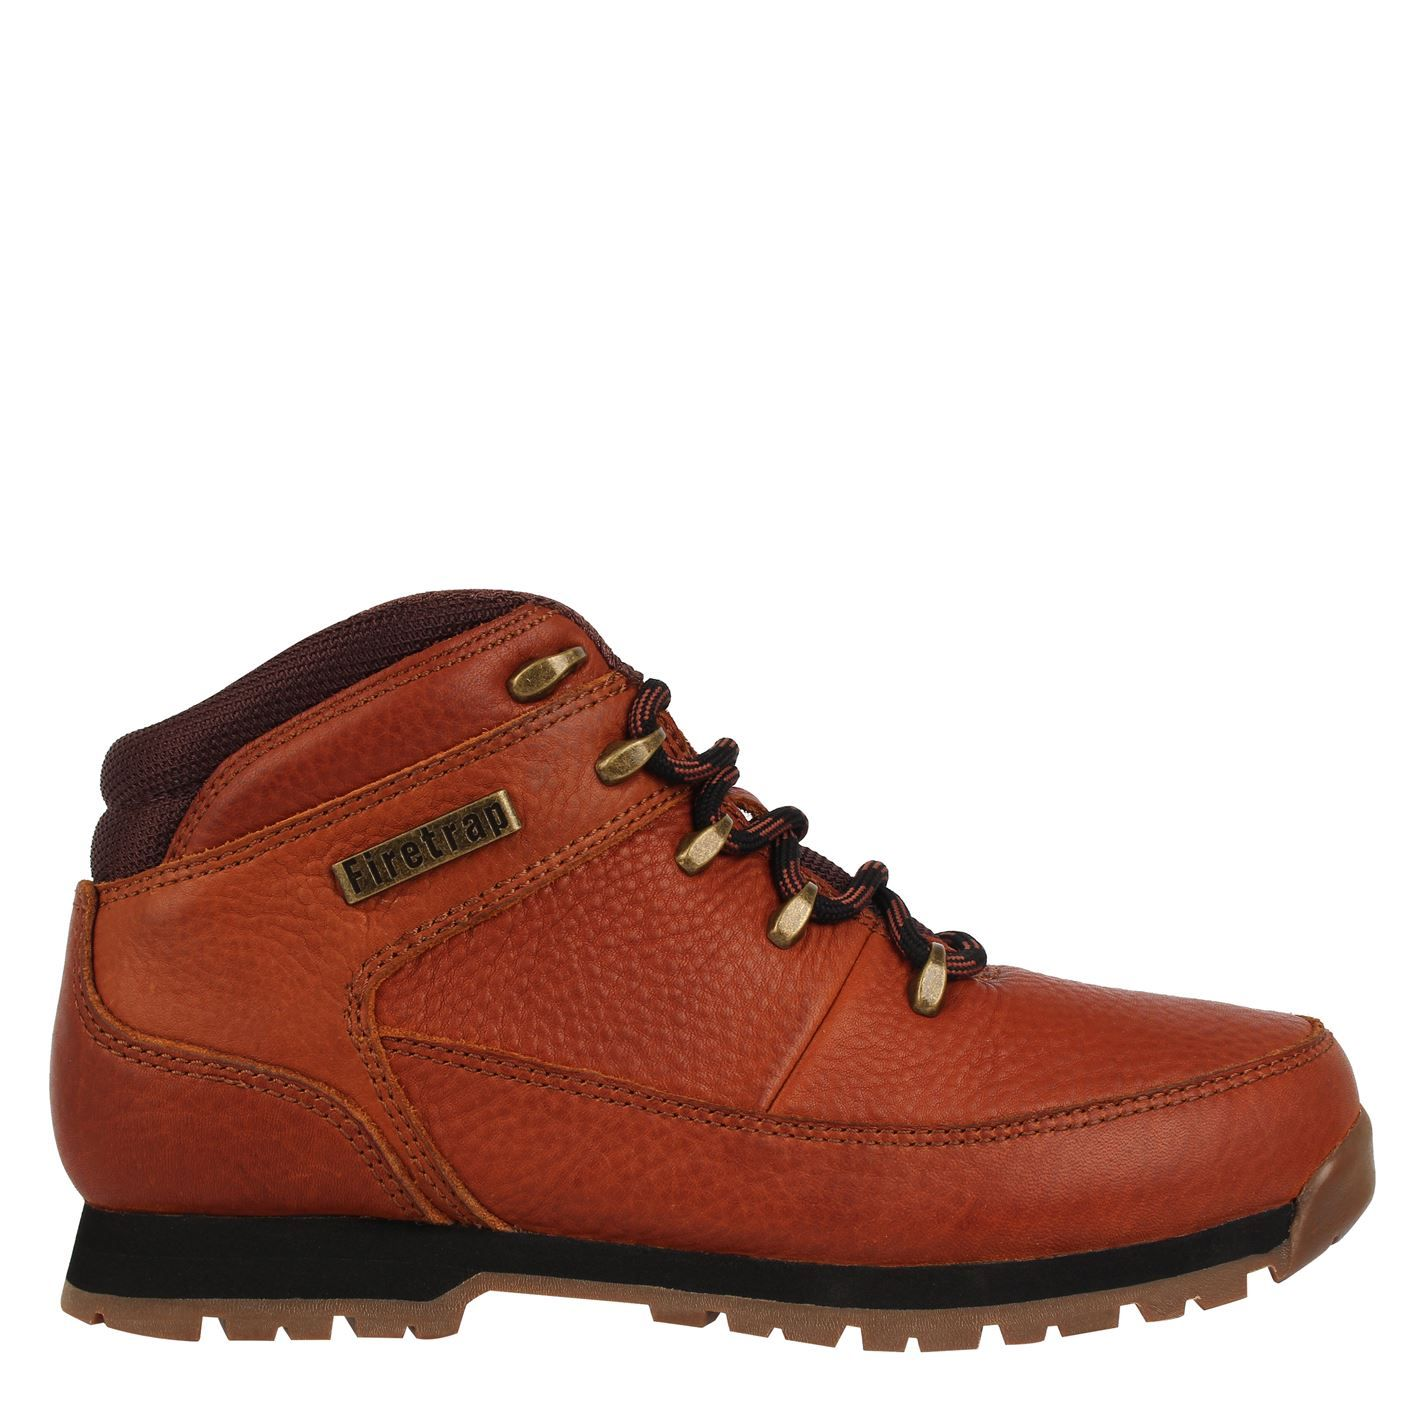 Firetrap Rhino Mens Ankle Boots Casual Walking Shoes Grip Sole Lace Up Leather